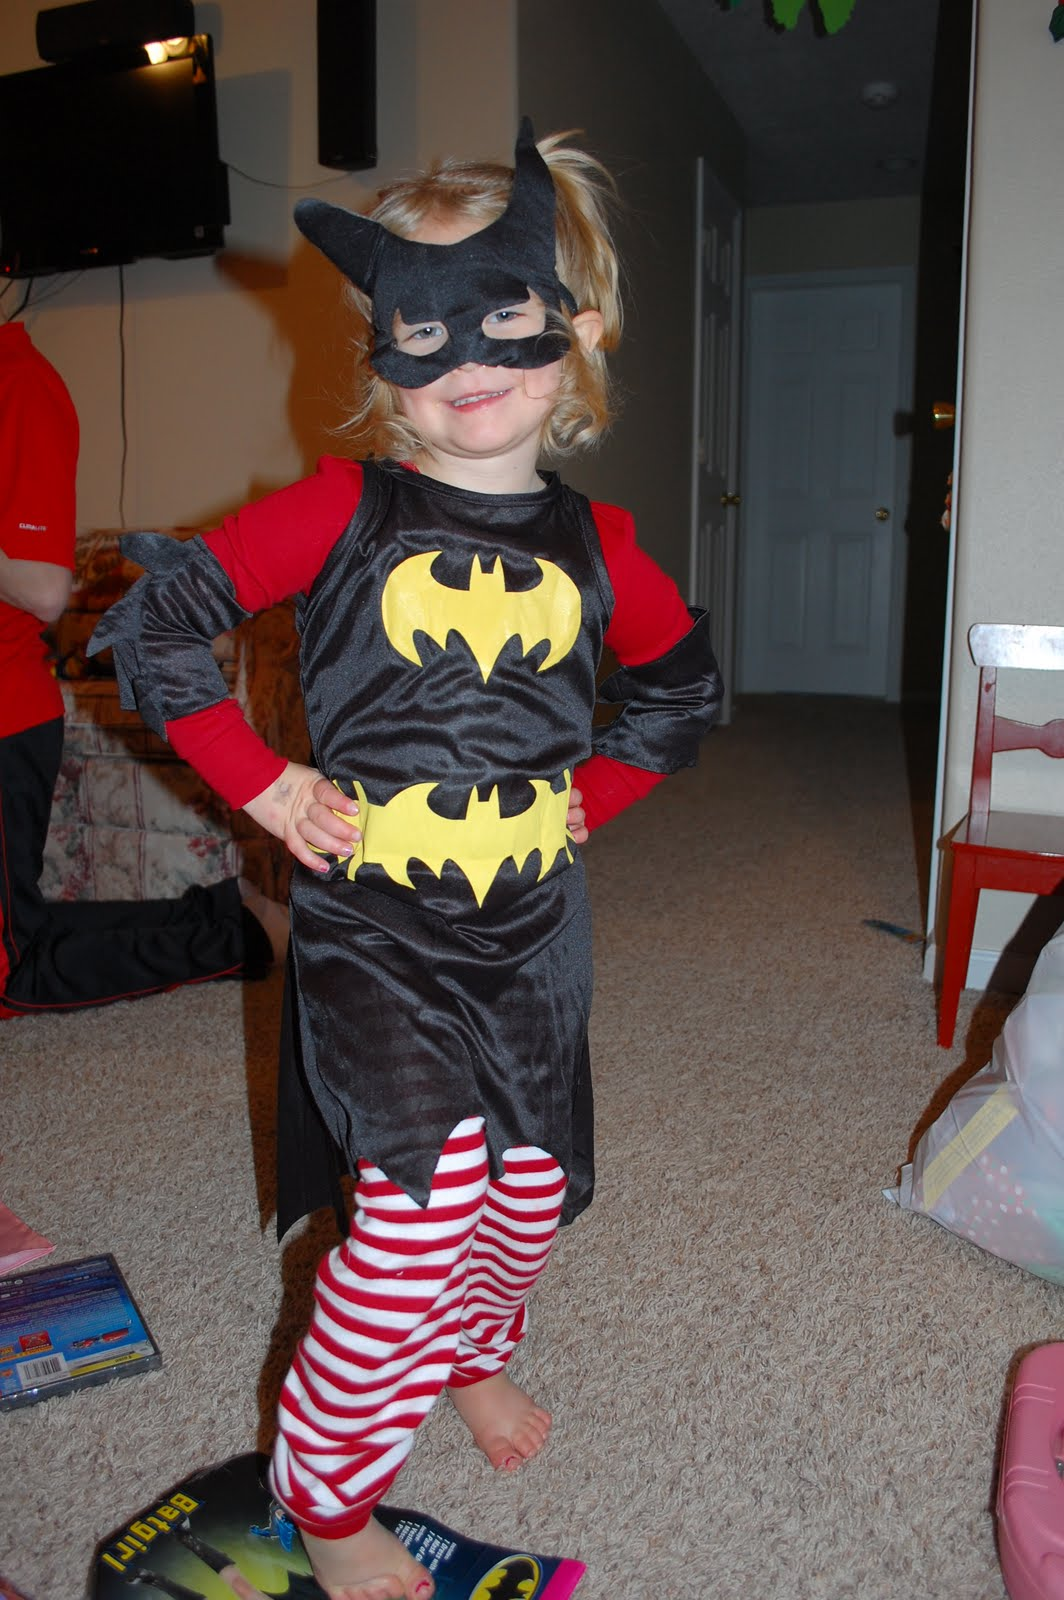 ... not Halloween ,Kora is just that much into dress up that she got a Super ...